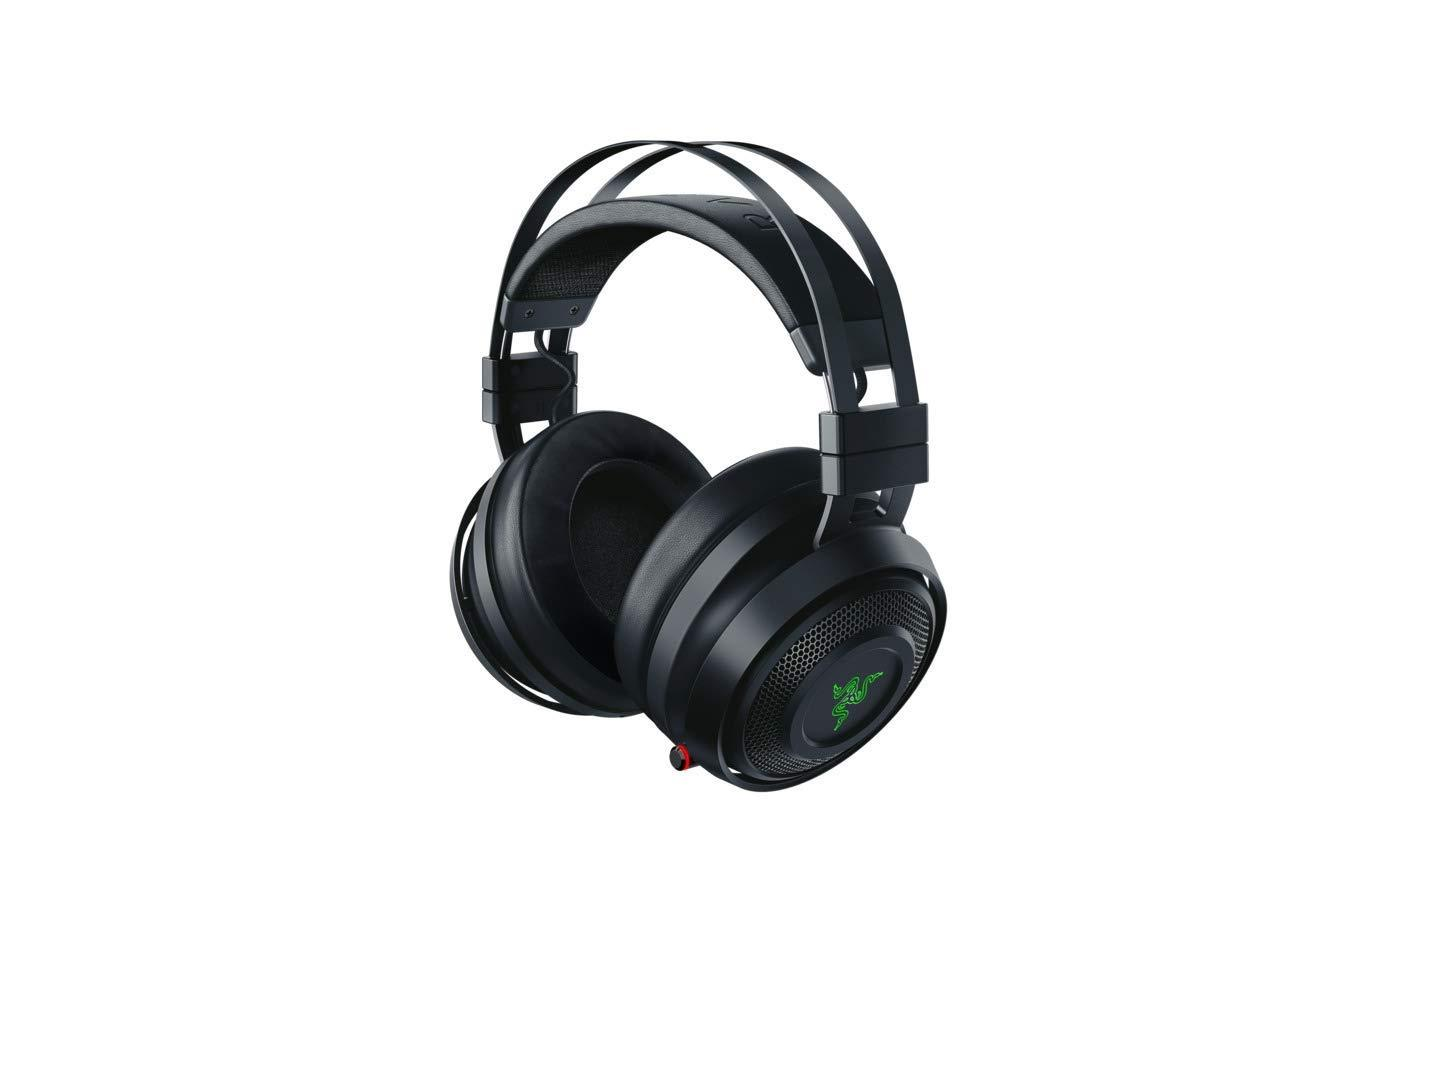 Razer Nari Gaming Headset - Wireless